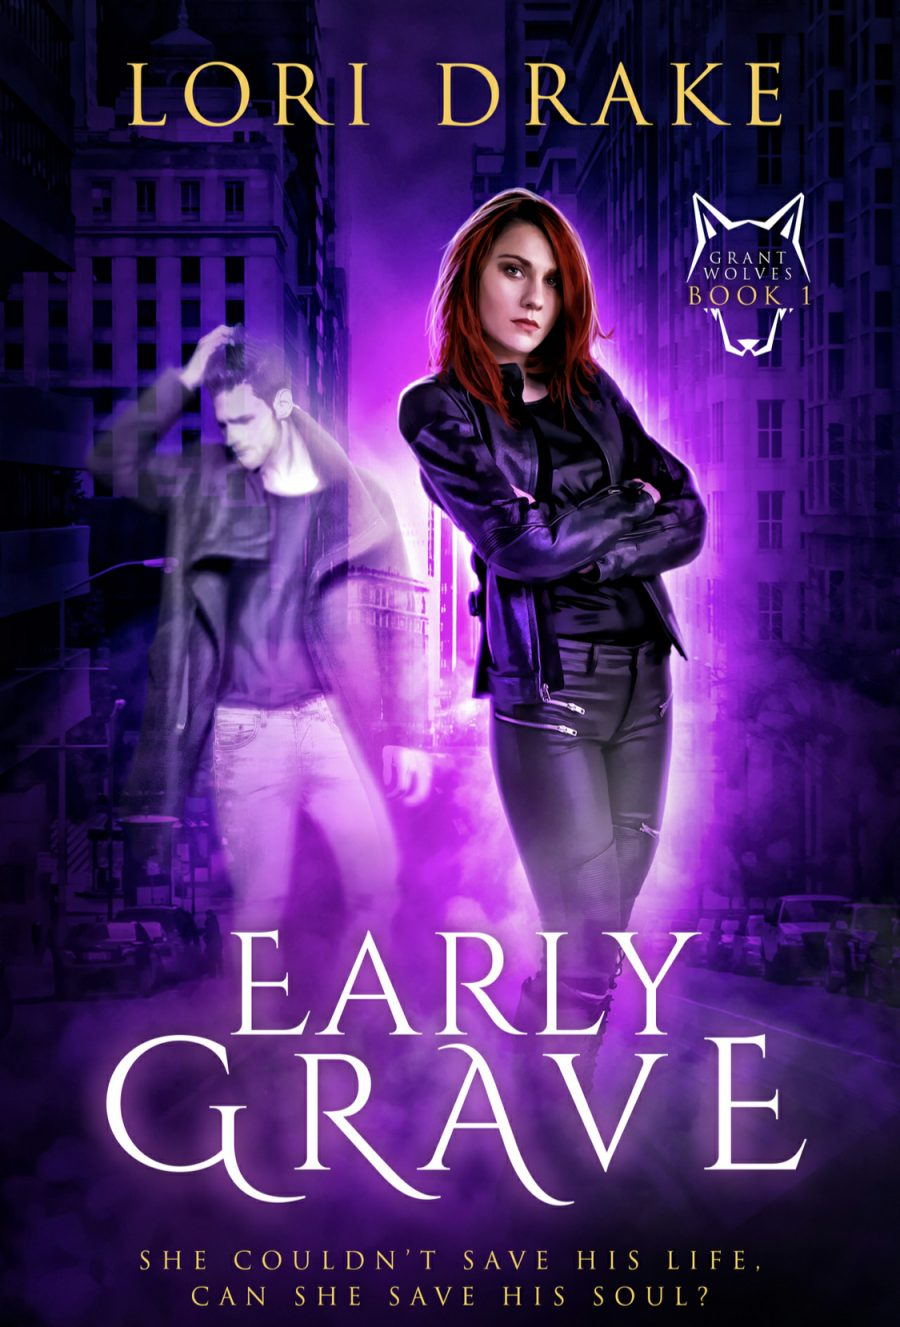 Early Grave by Lori Drake – A Book Review